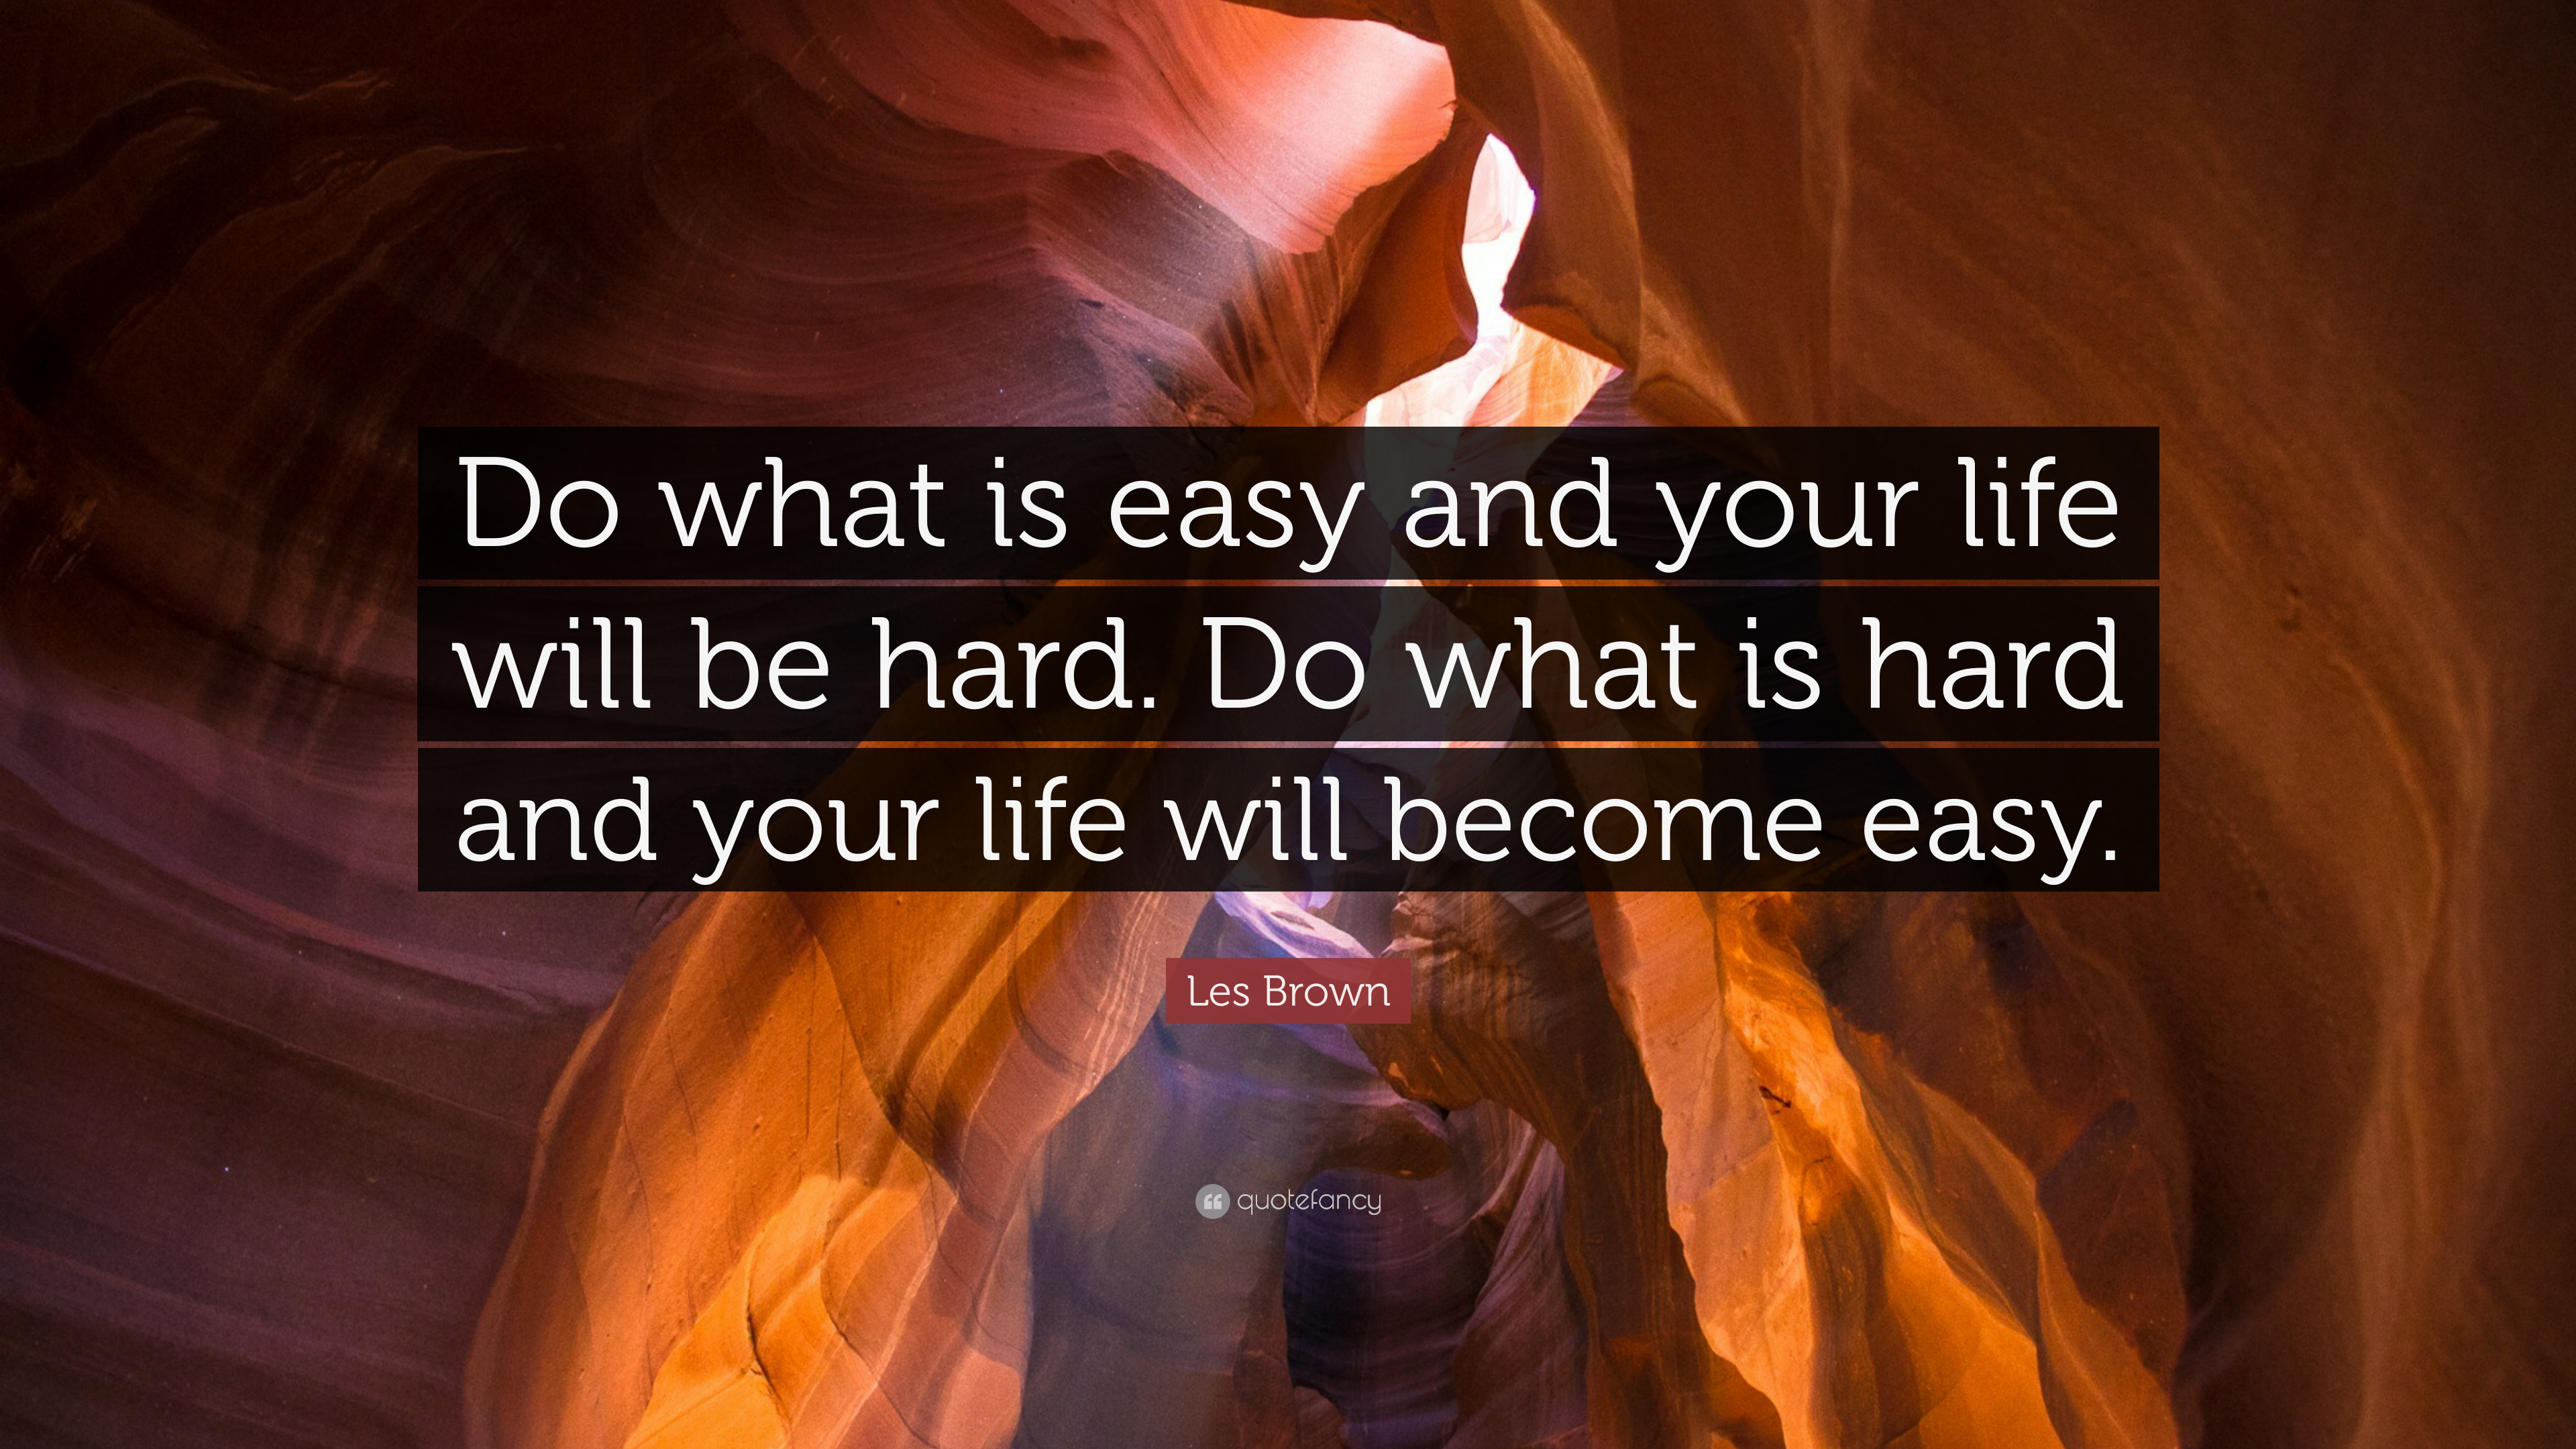 Les Brown Quote   U201cdo What Is Easy And Your Life Will Be